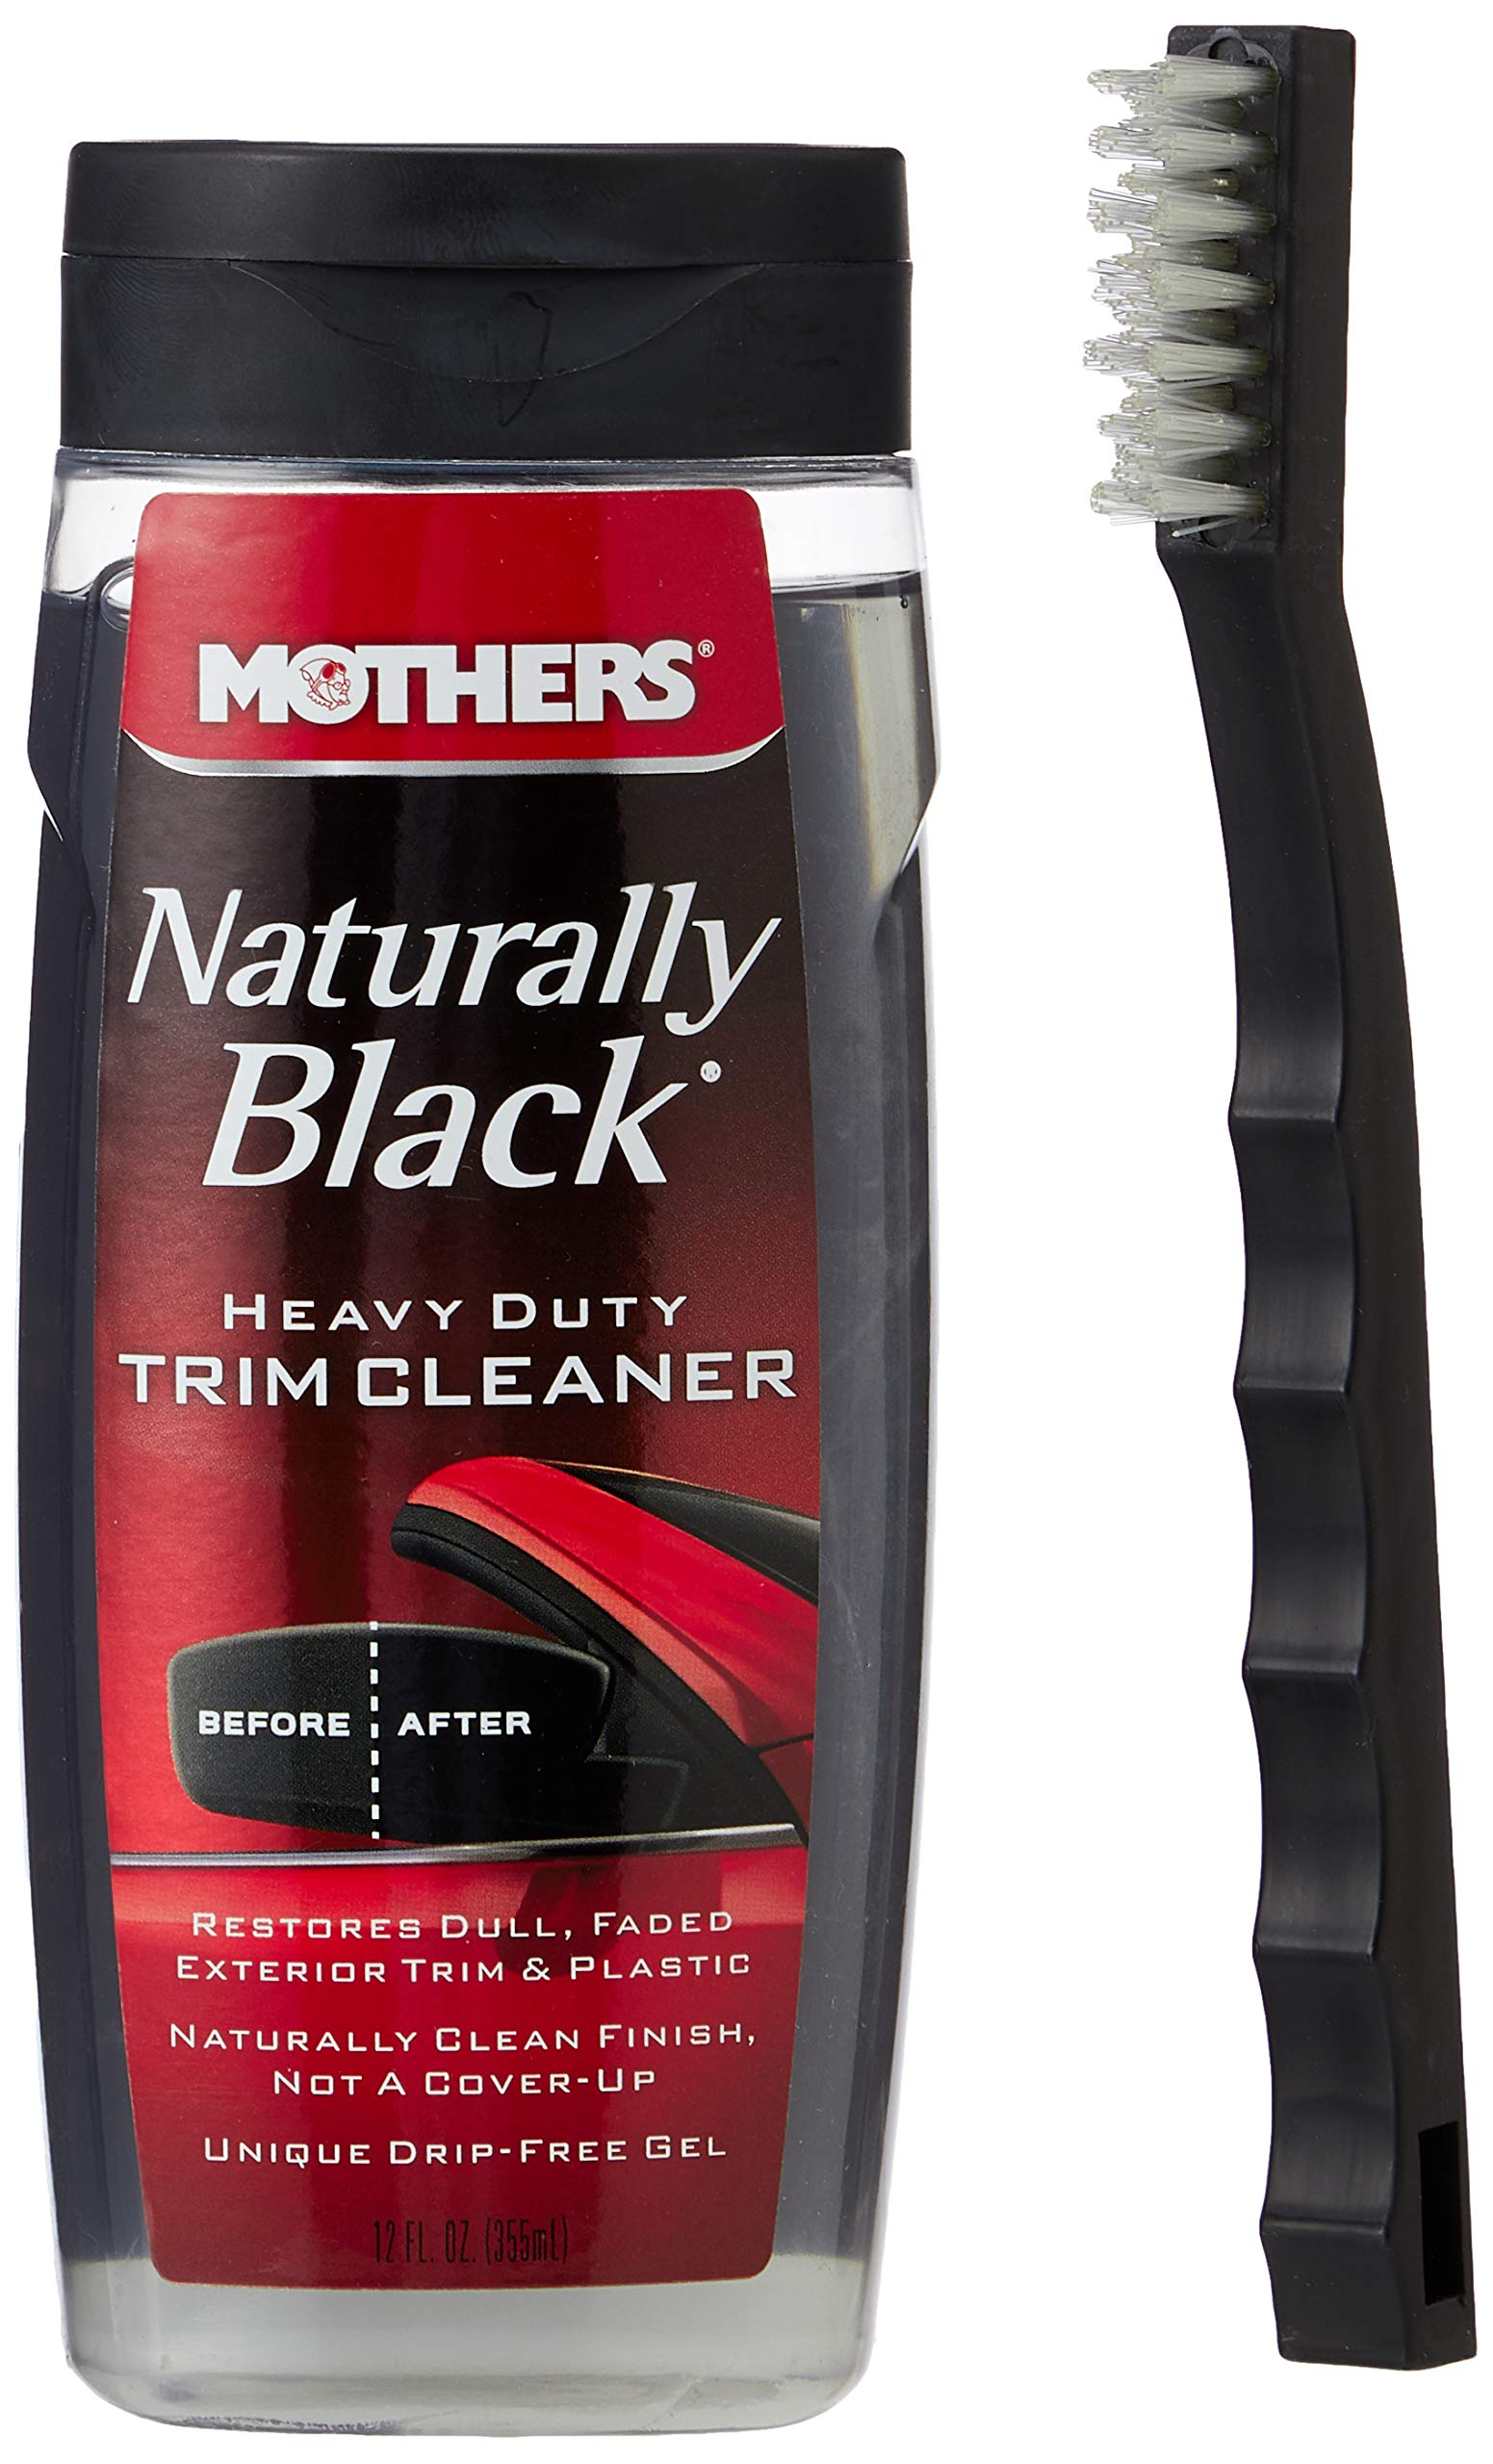 MOTHERS MO-46141 Naturally Black Heavy Duty Trim Cleaner with Brush